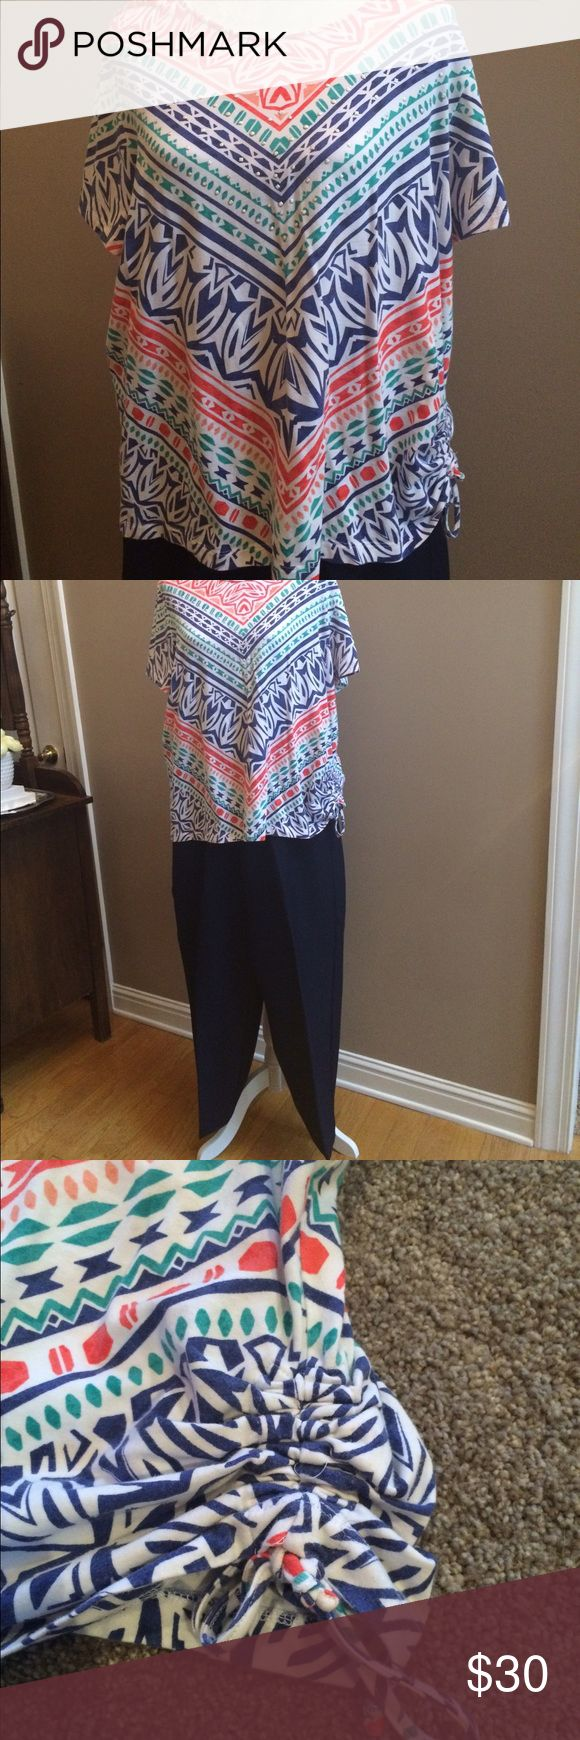 Women's shirt & pants set Alfred Dunner multi color shirt with one side of ruching, size XL. NWT Alfred Dunner navy elastic waist pants, size 16 short Alfred Dunner Pants Trousers